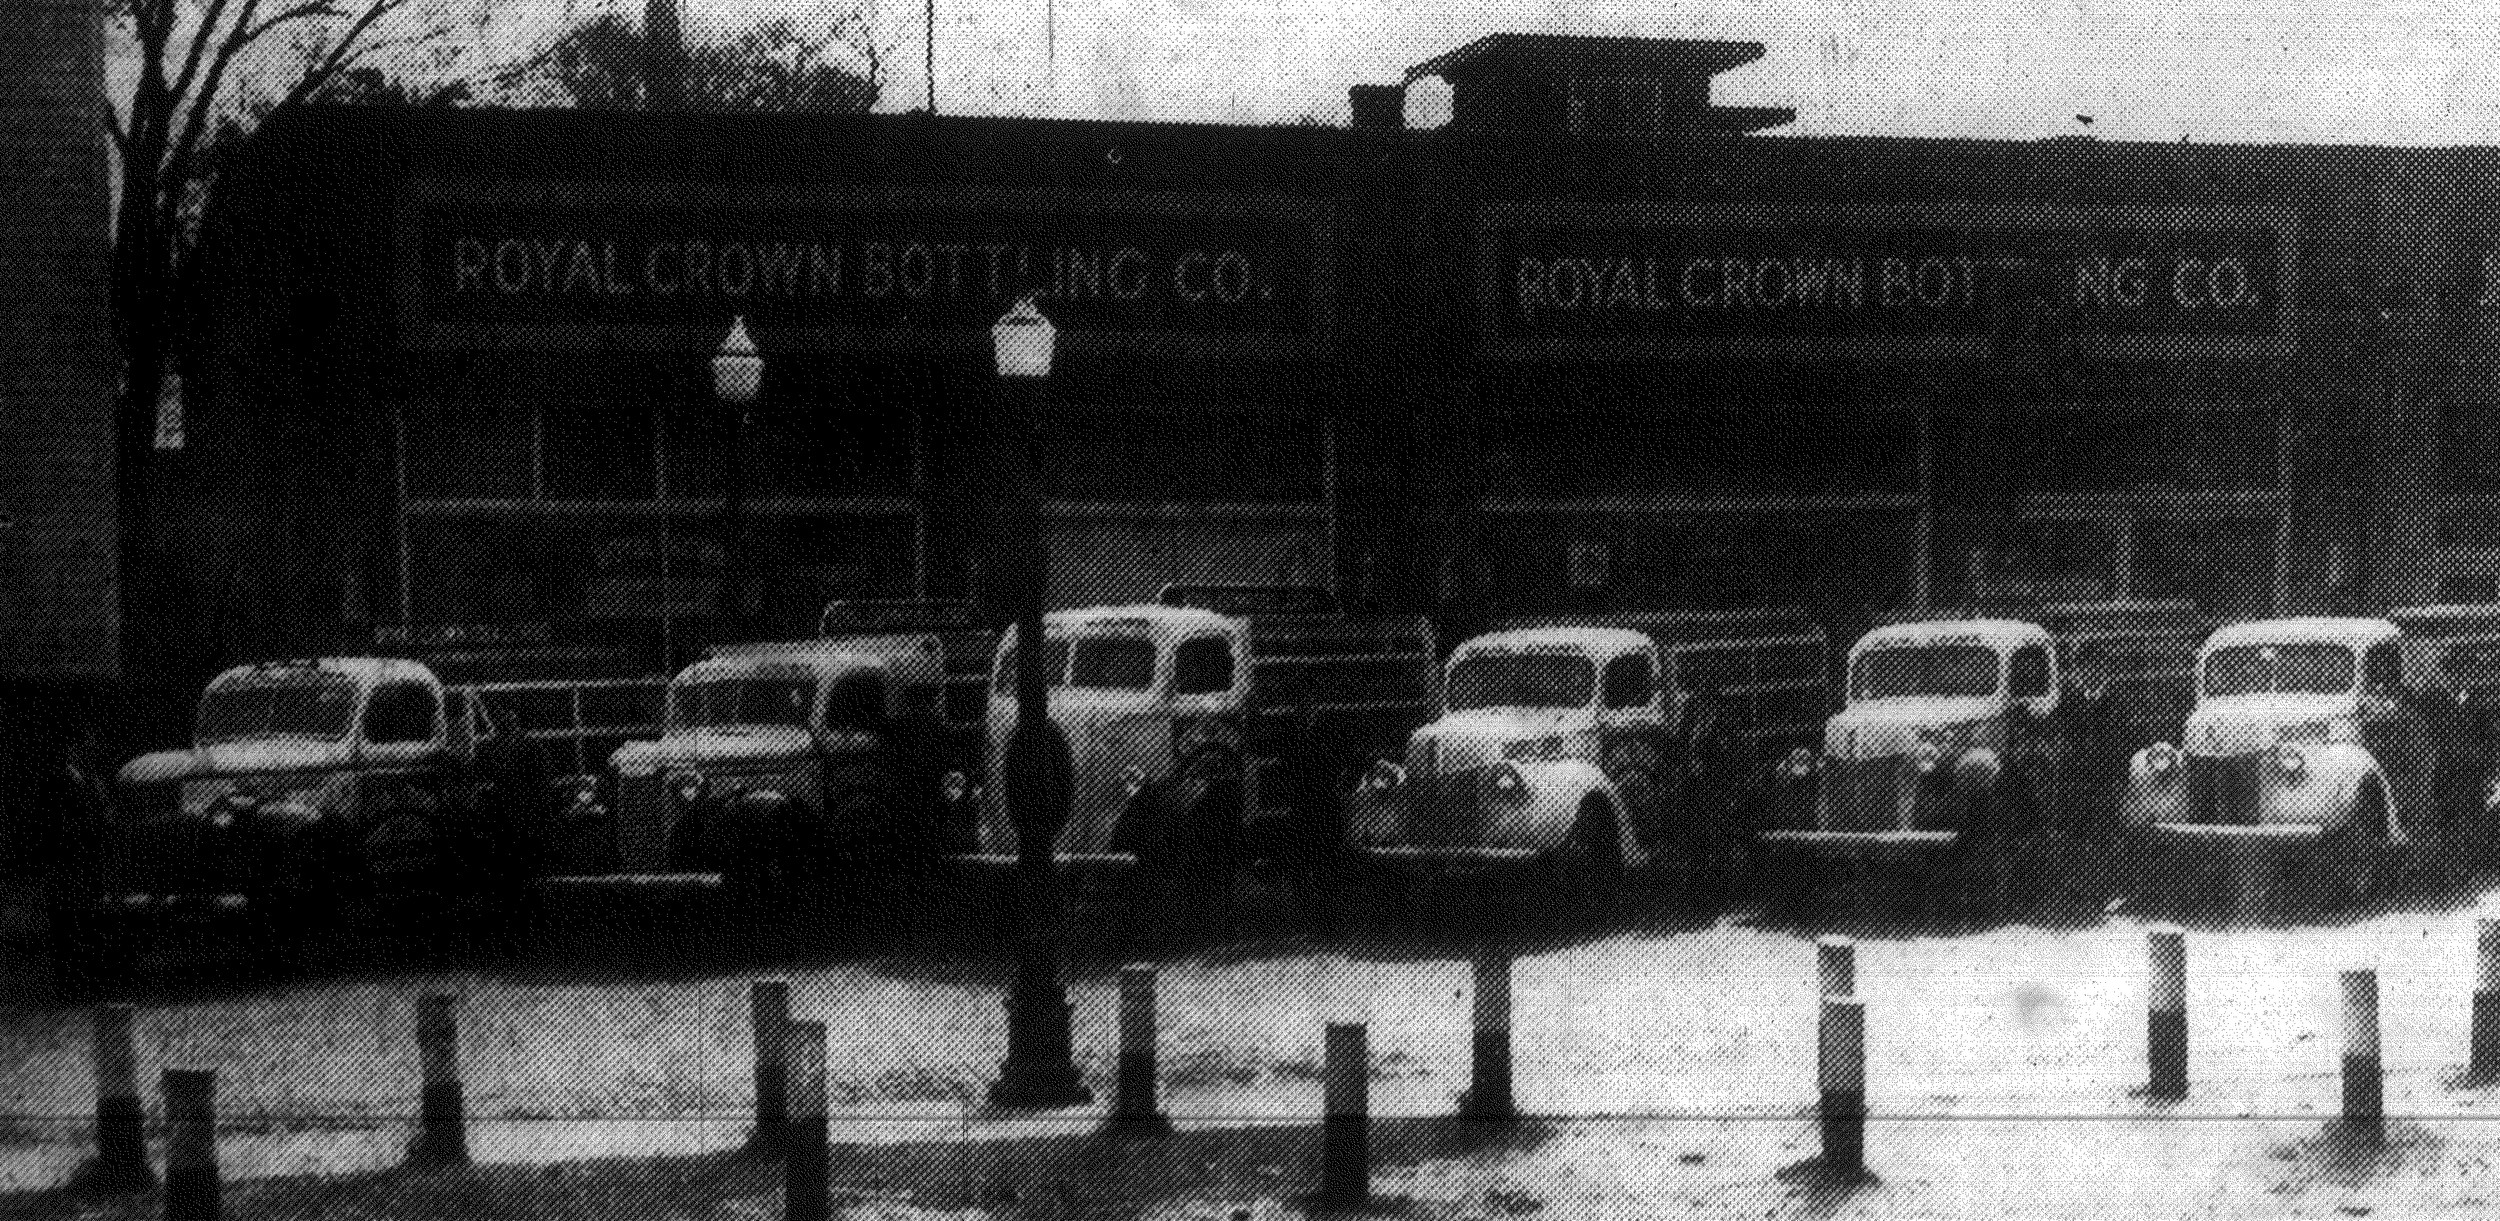 The fleet of Royal Crown Cola trucks is shown parked in front of the RC plant.